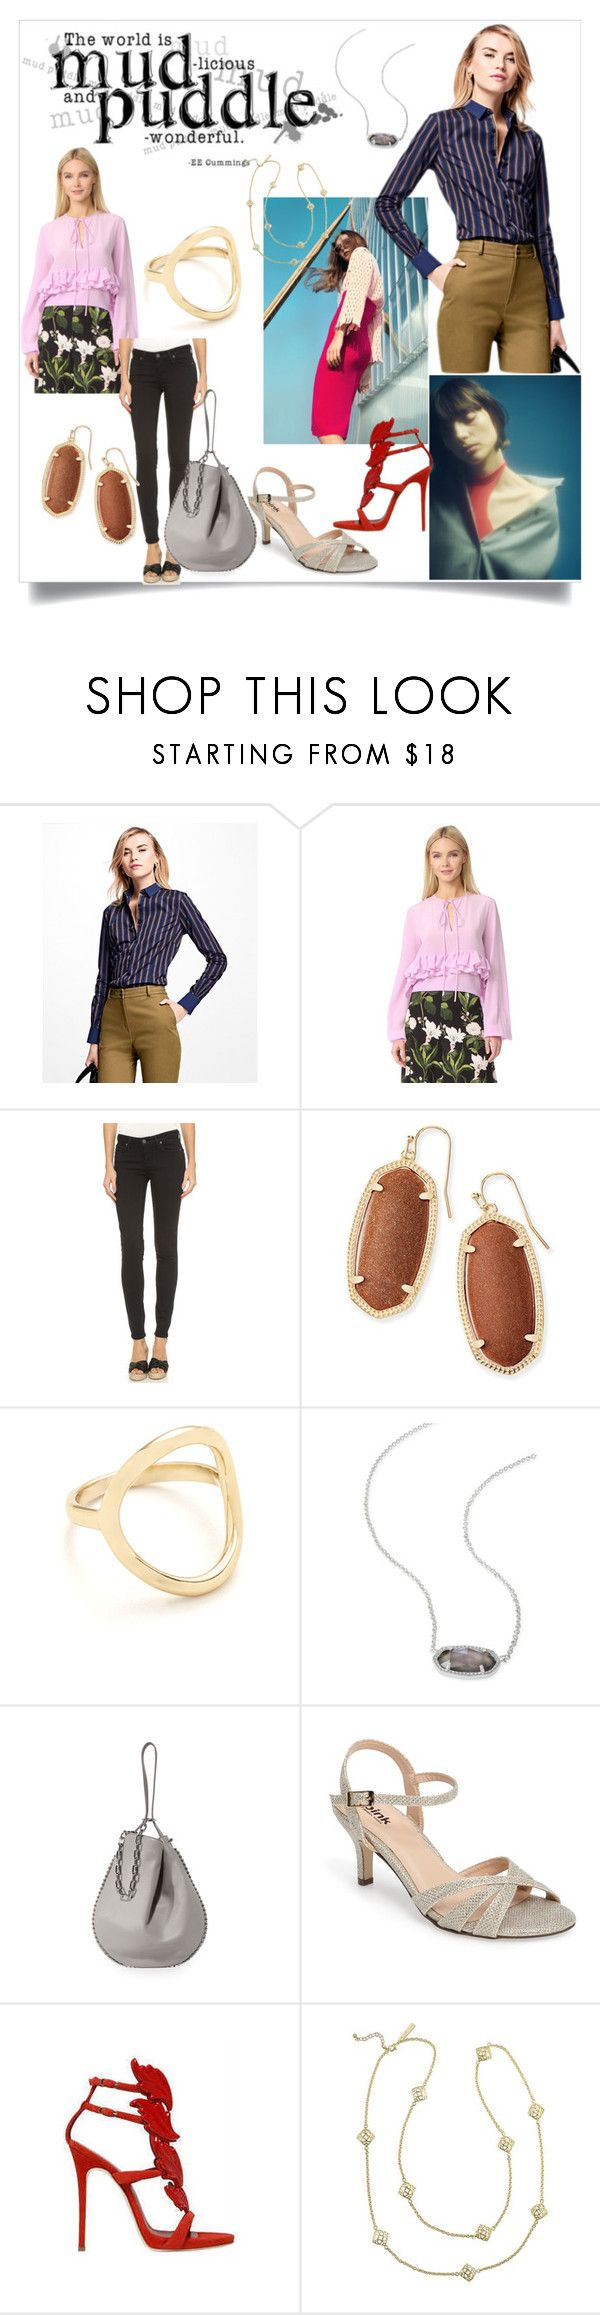 """""""Express your Style"""" by denisee-denisee ❤ liked on Polyvore featuring Rettore, Brooks Brothers, Rochas, Paige Denim, Kendra Scott, Madewell, Alexander Wang, Pink Paradox London and Giuseppe Zanotti"""